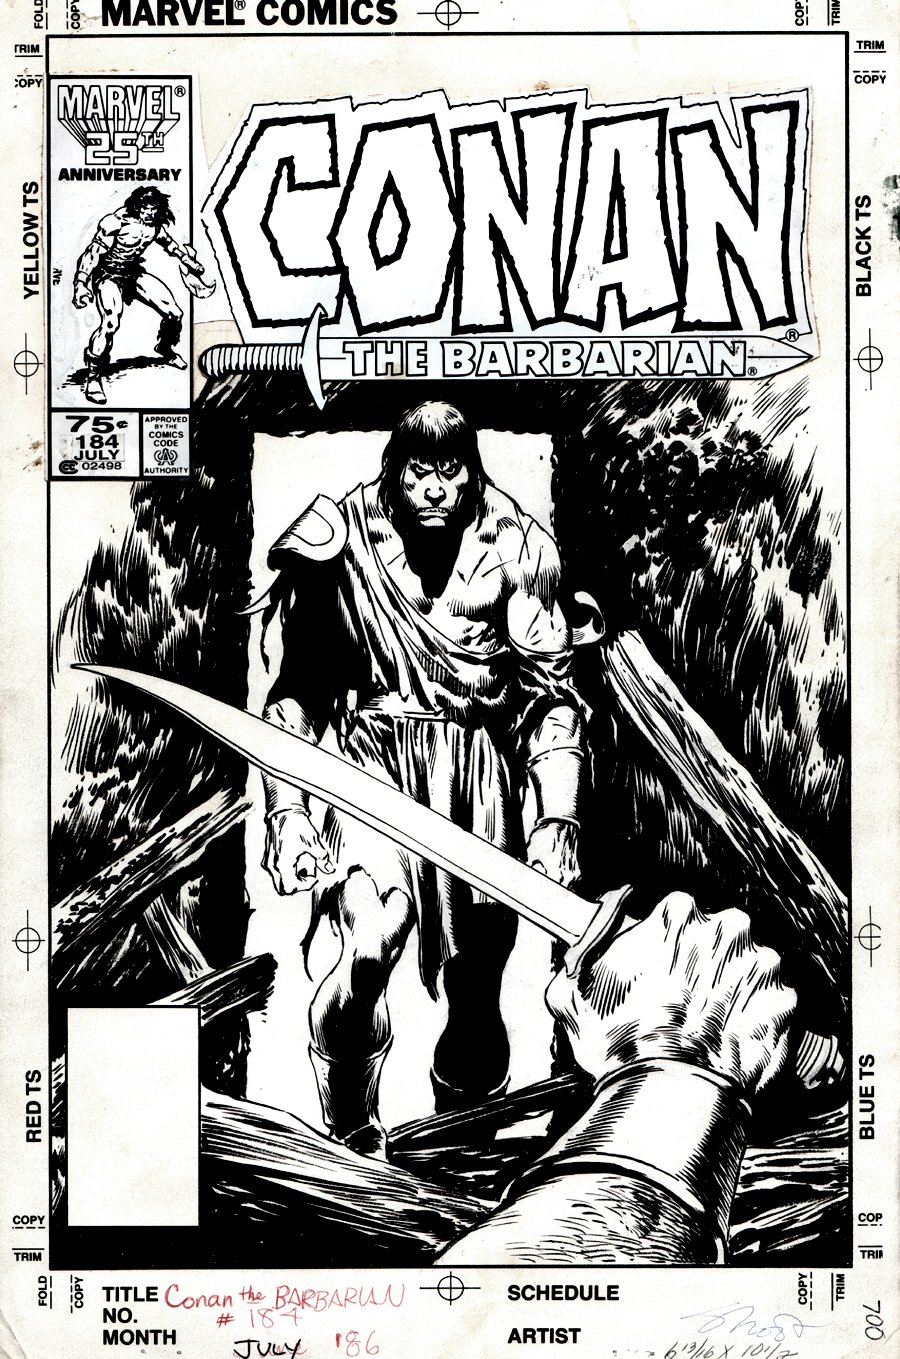 Conan the Barbarian #184 Cover (1986)